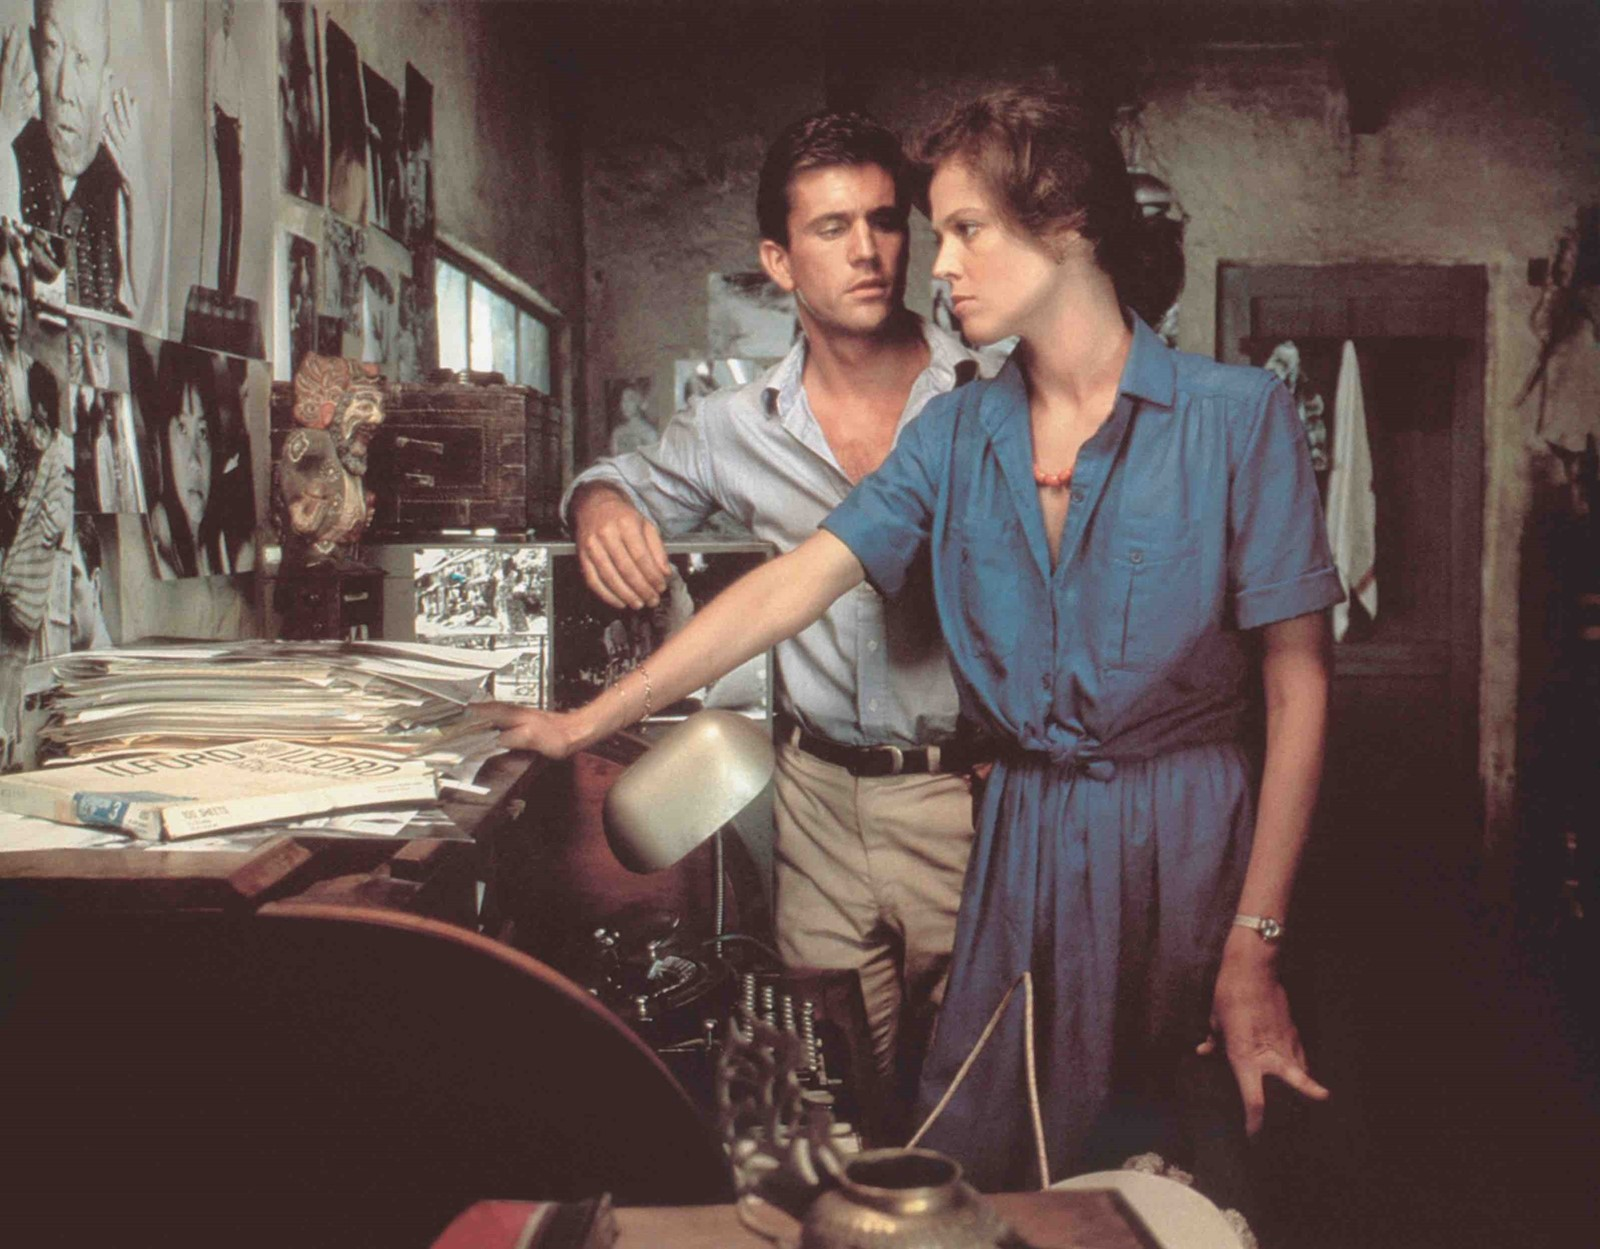 Sigourney Weaver in The Year of Living Dangerously by direct